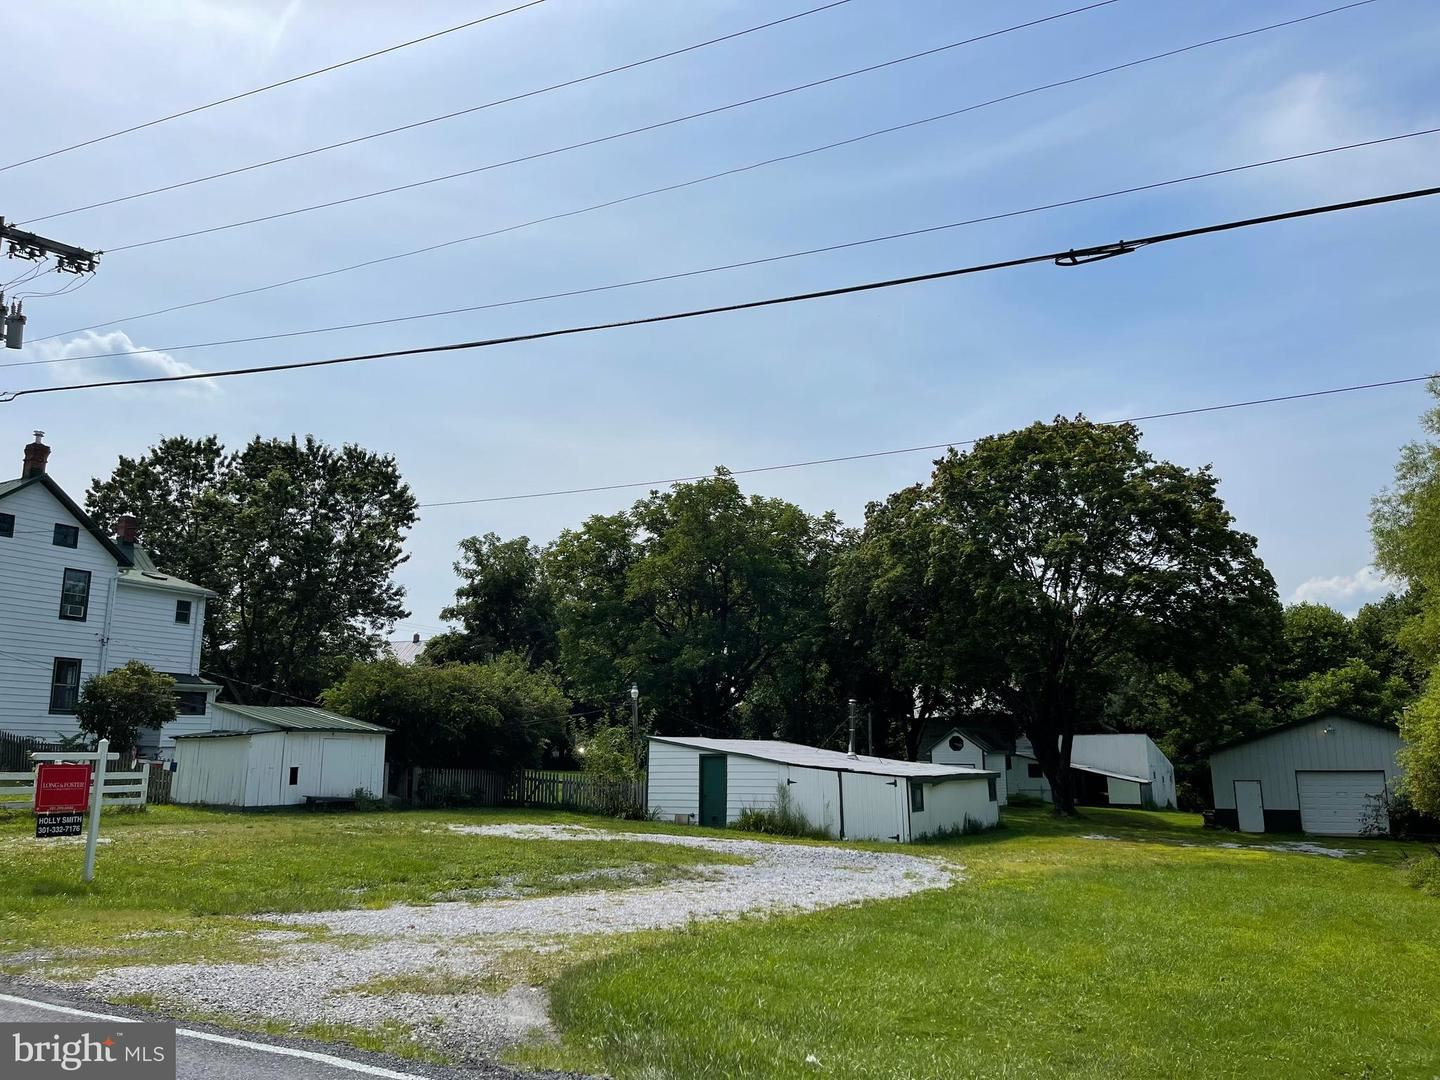 922 E WATERSVILLE RD, Mount Airy, MD 21771 - MLS#: MDHW291706